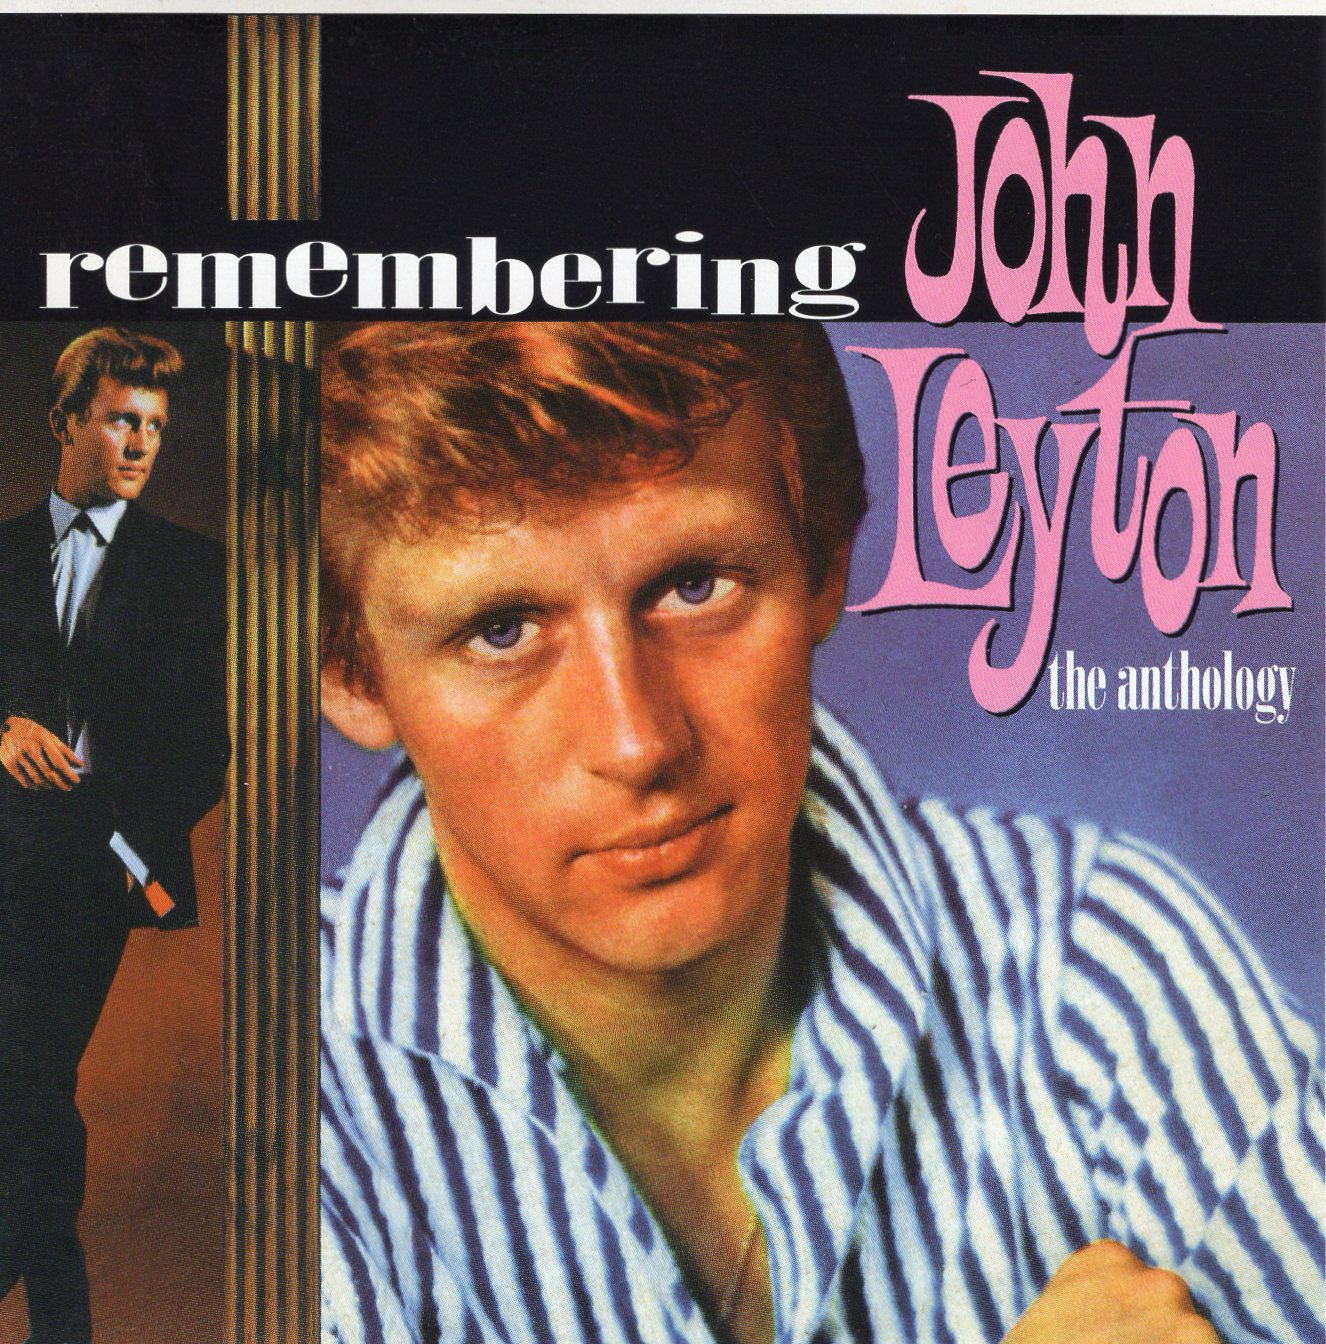 """Remembering John Leyton The Anthology"" John Leyton"